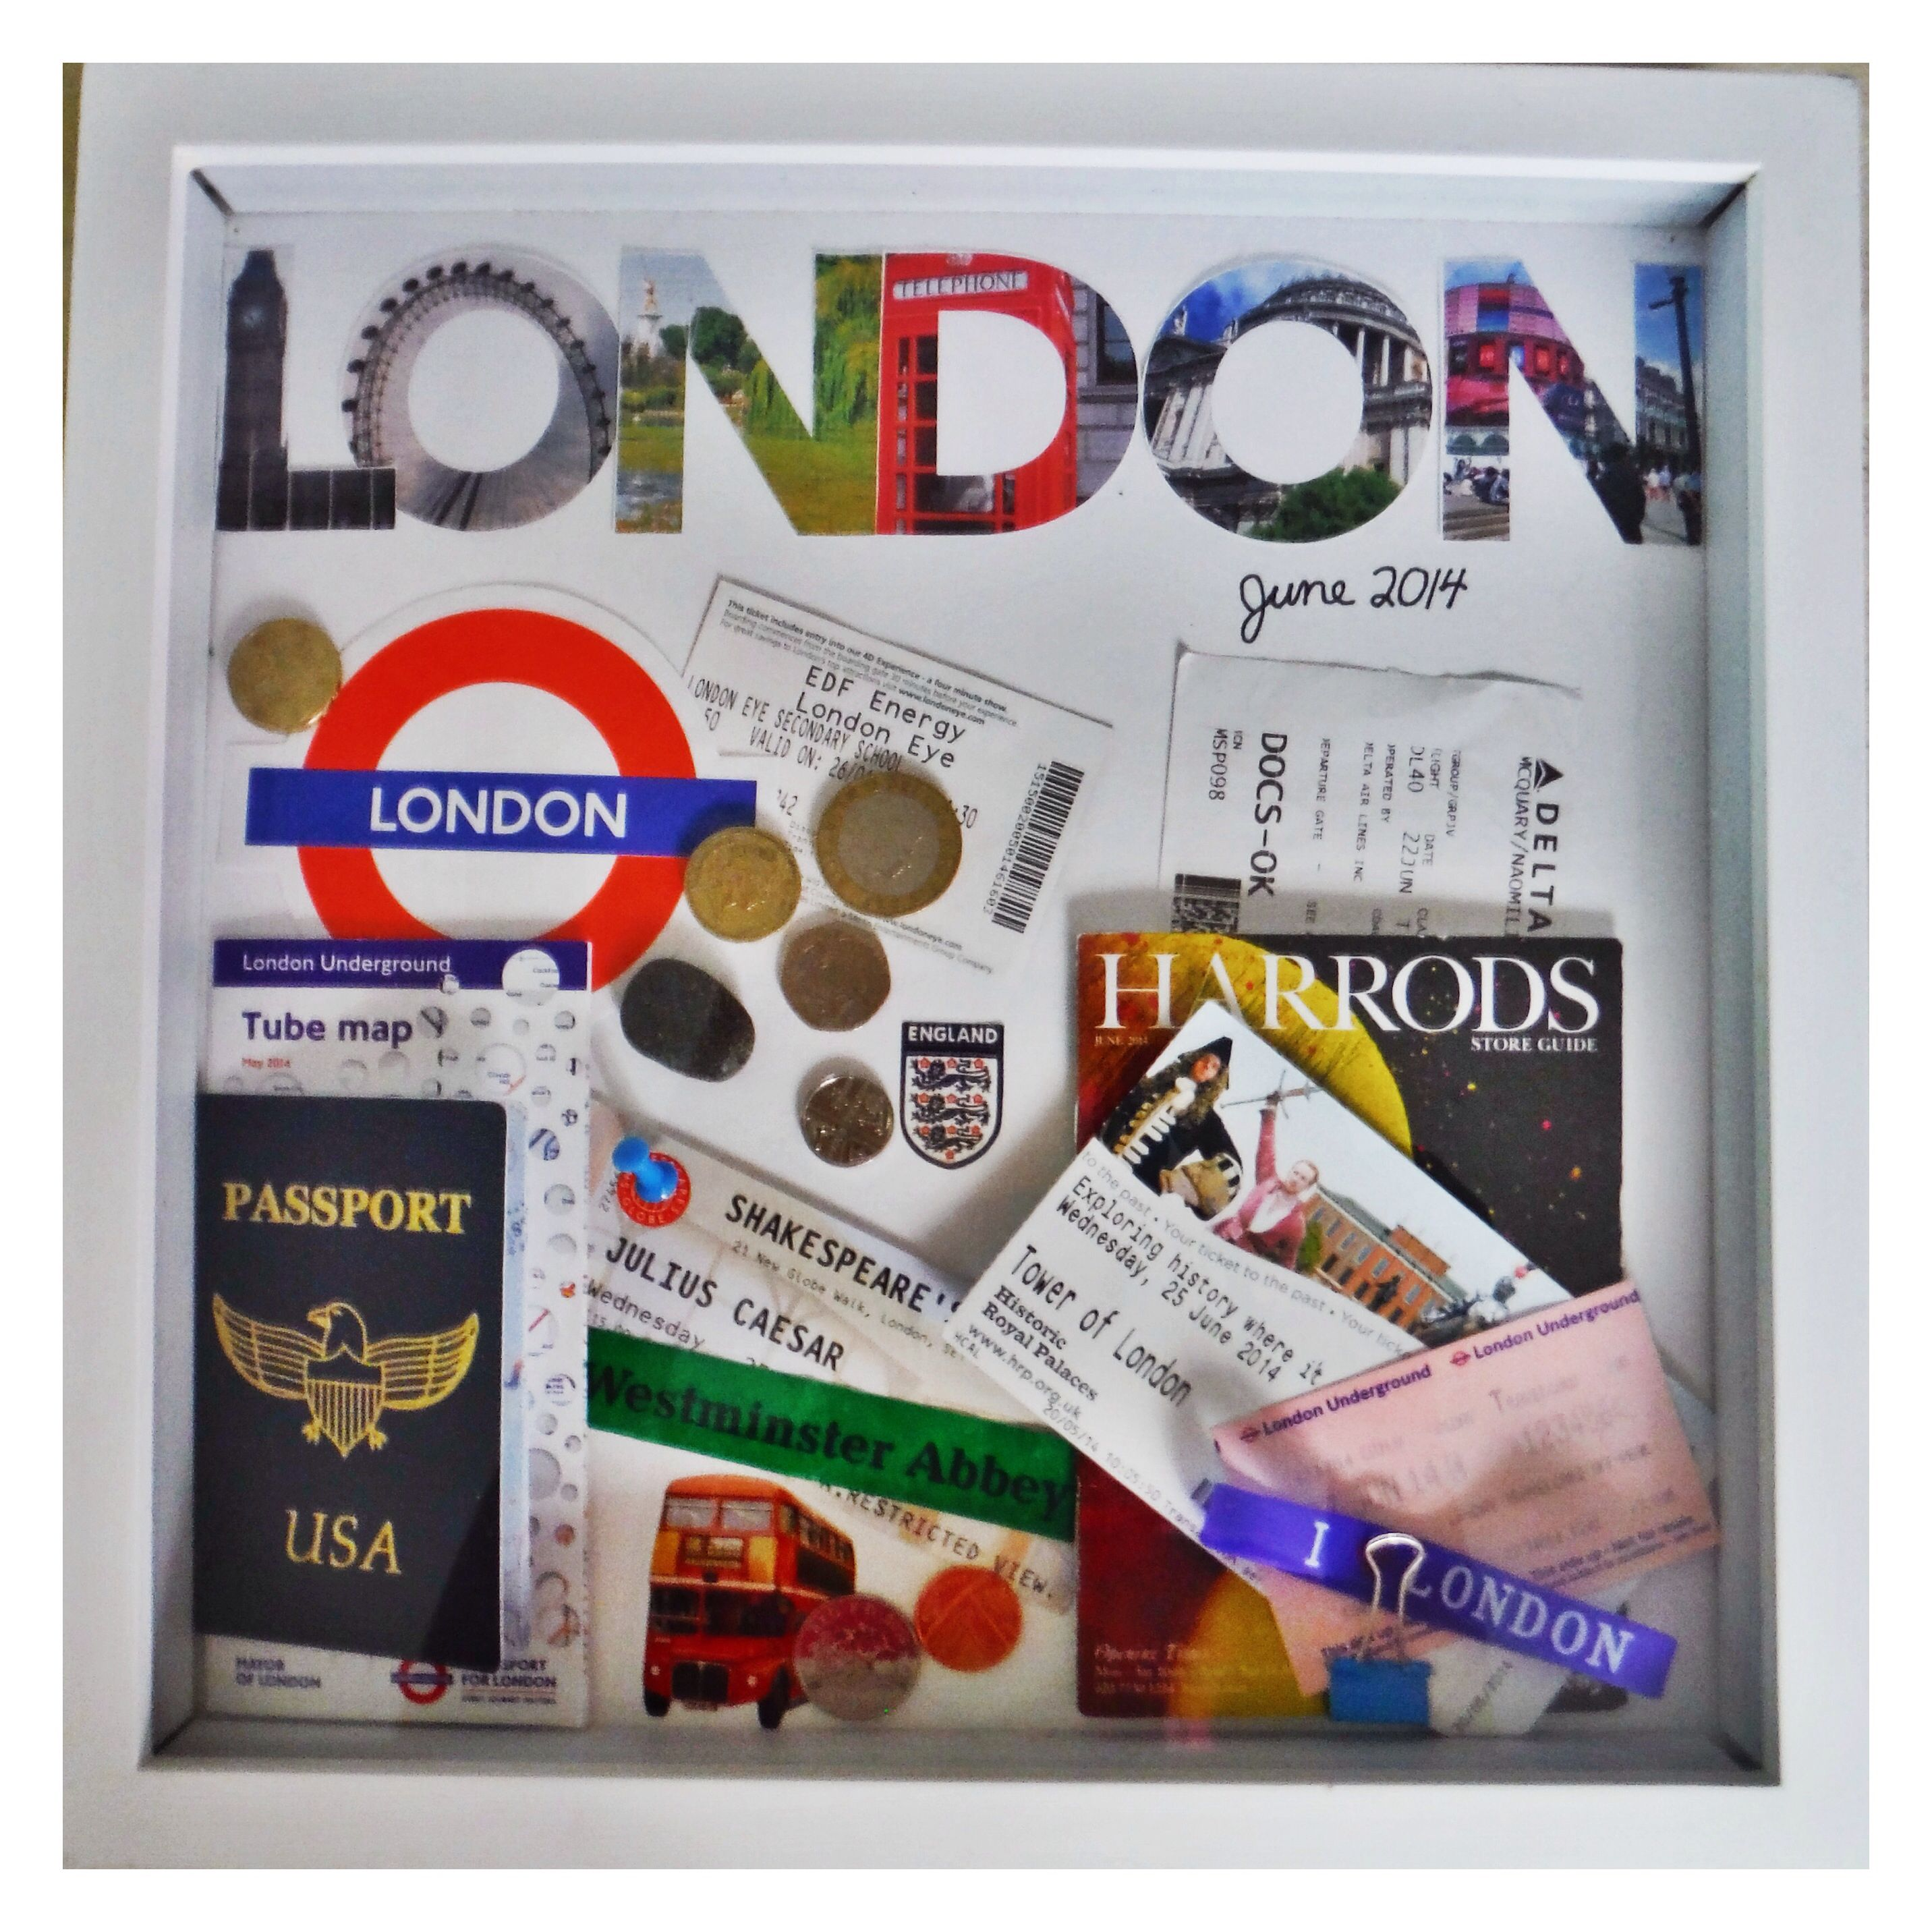 Diy travel memento shadowbox display ticket stubs maps currency diy travel memento shadowbox display ticket stubs maps currency and other precious solutioingenieria Images